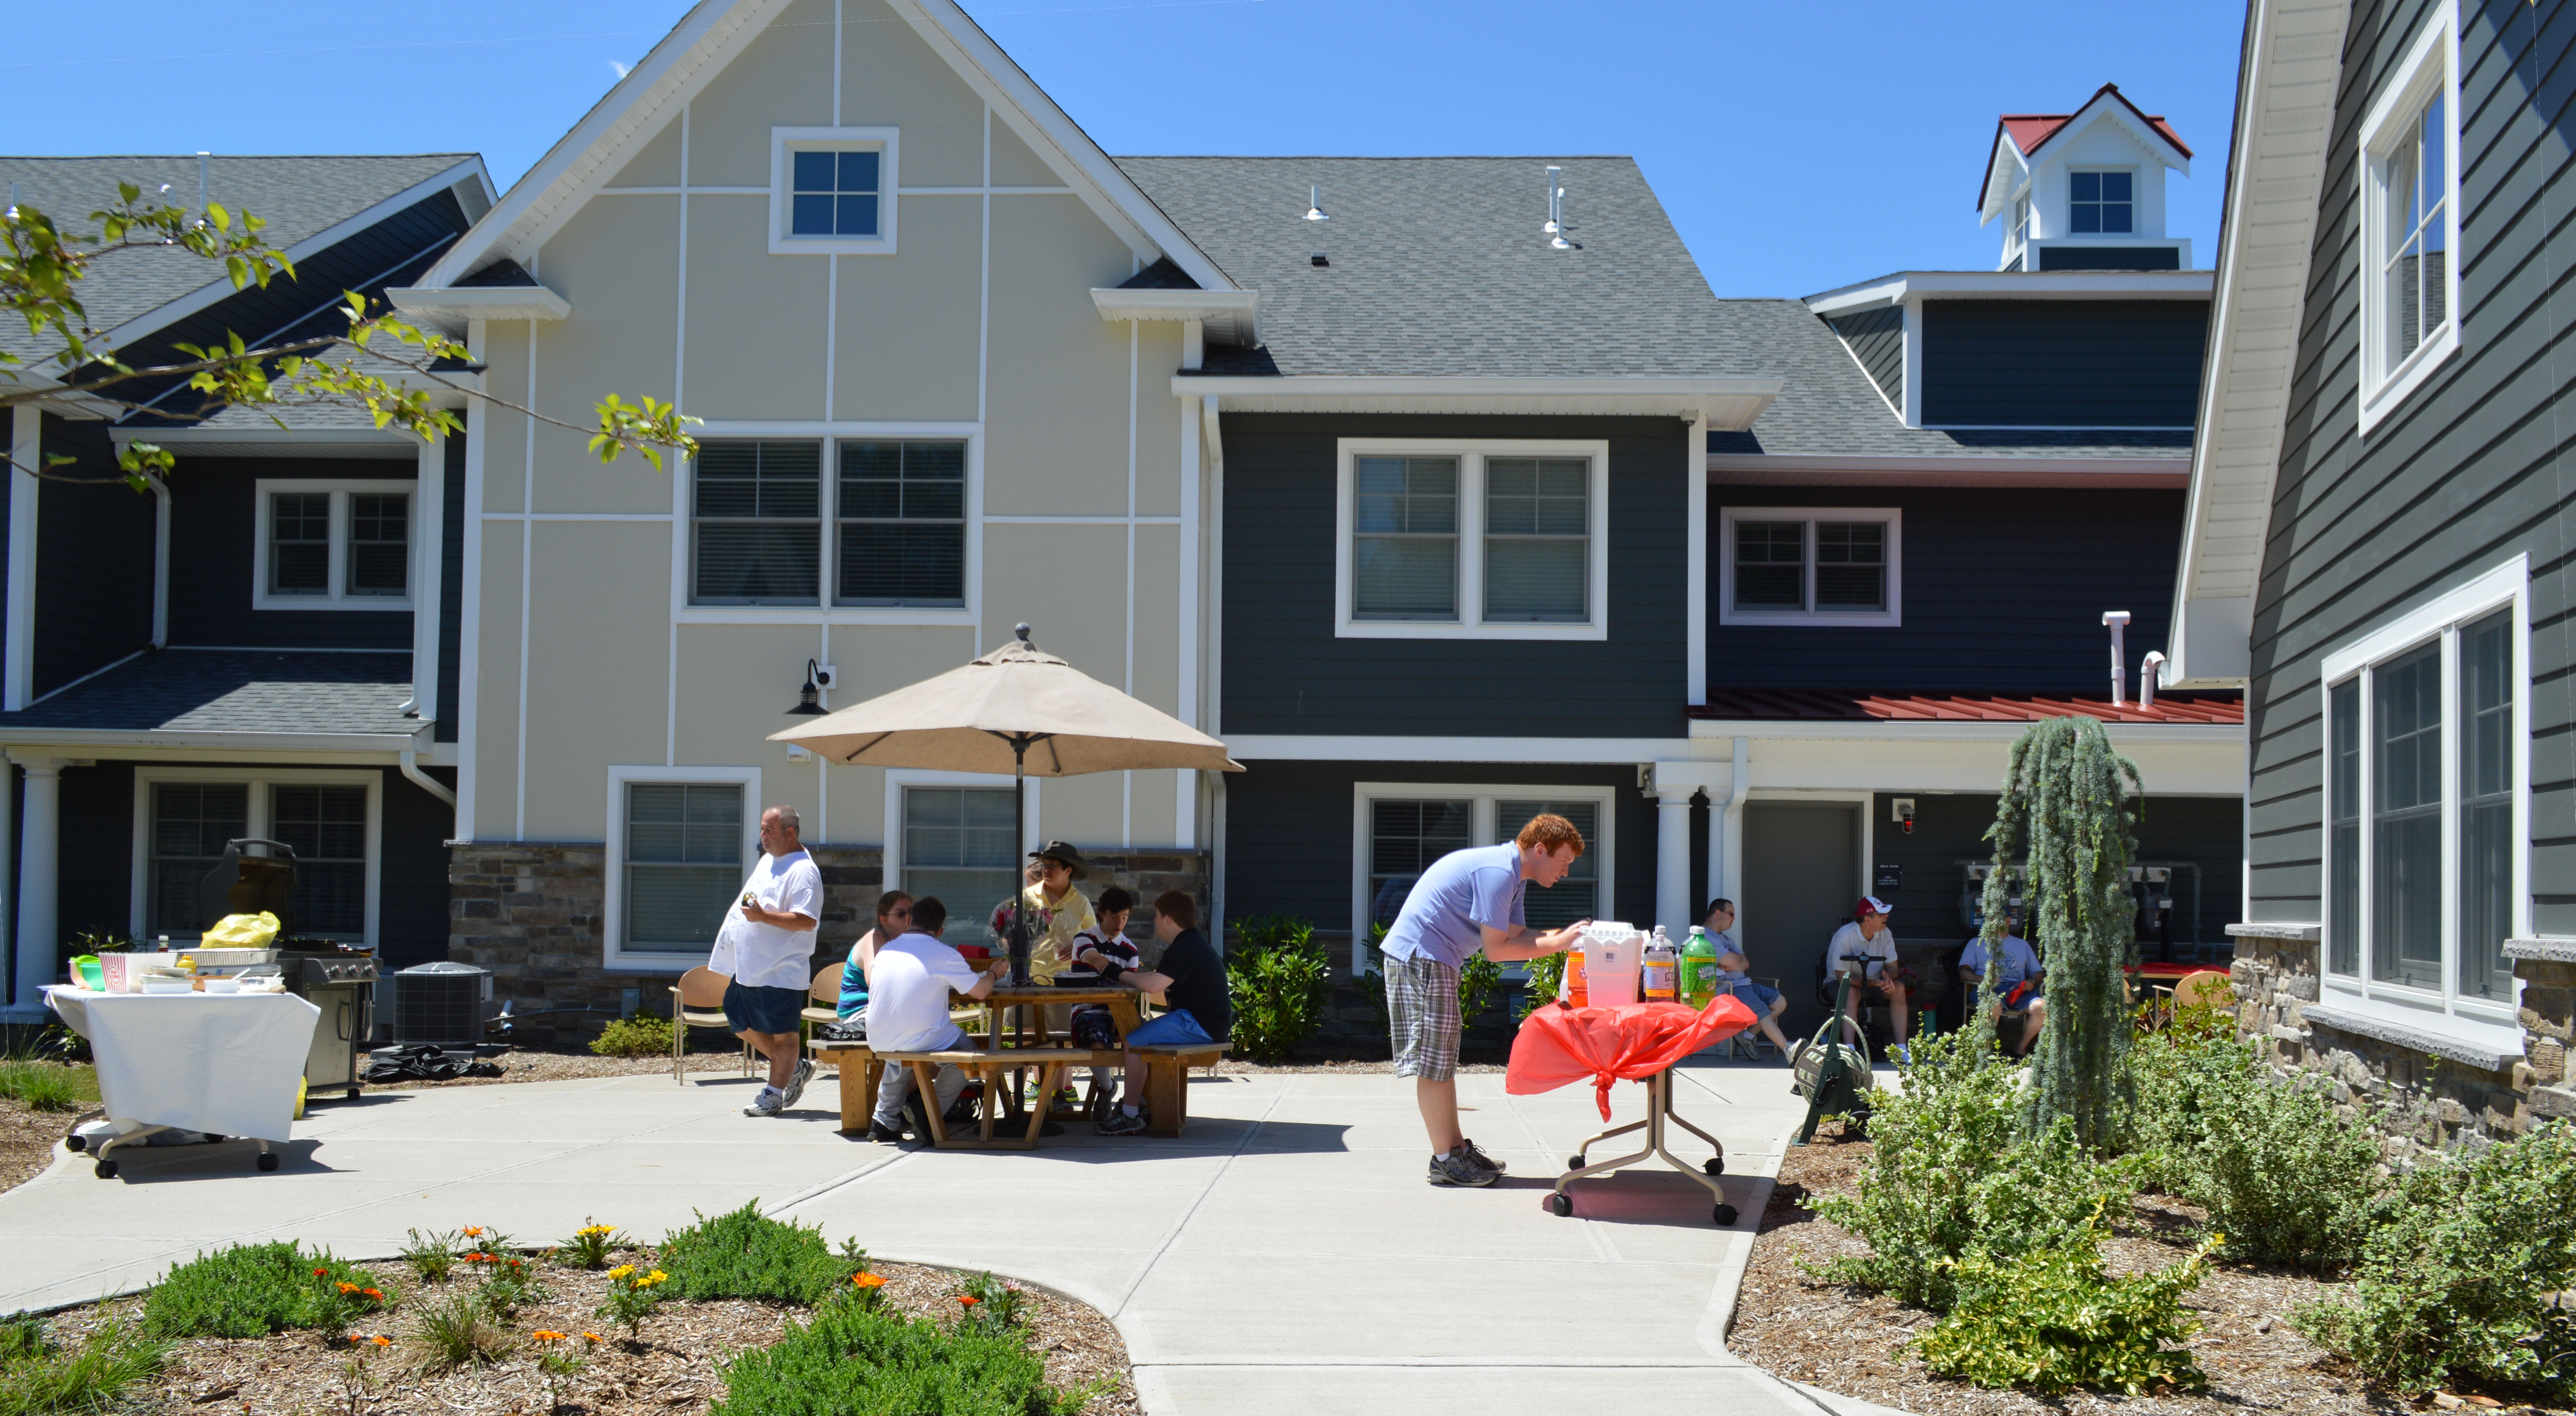 Building homes that empower independence.